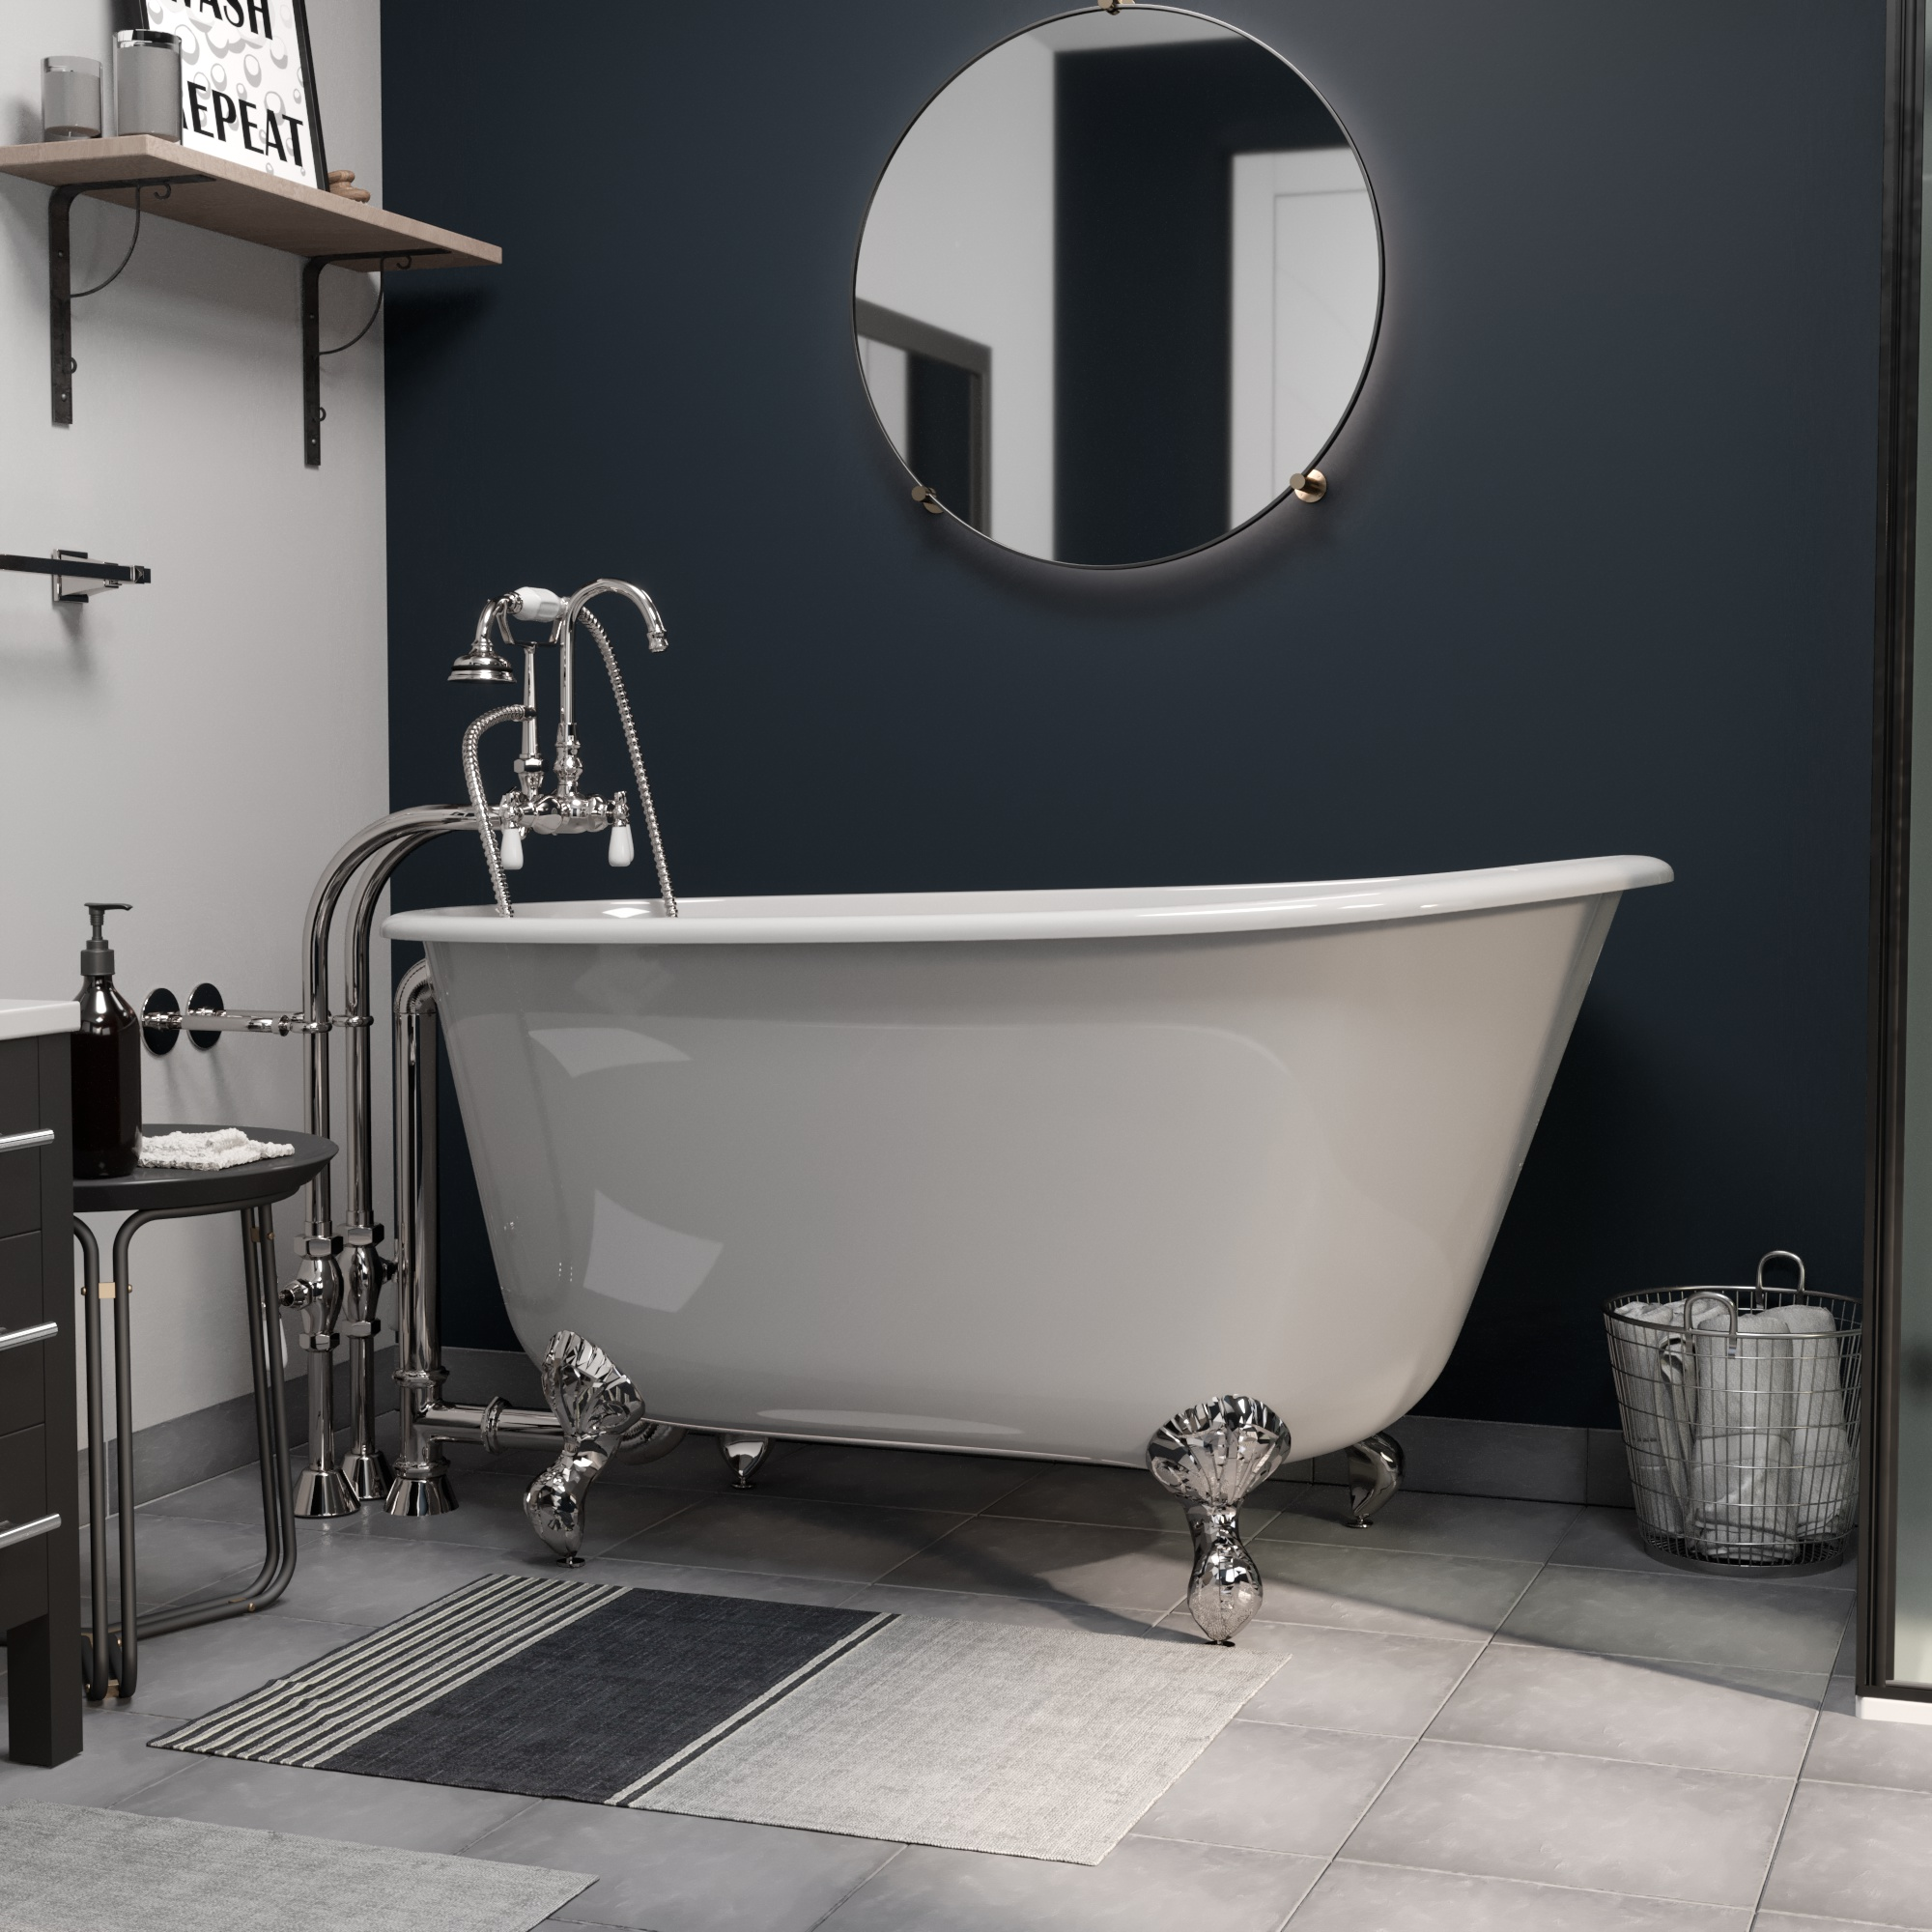 """Cast Iron Swedish Slipper Tub 54"""" X 30"""" with no Faucet Drillings and Complete Polished Chrome Free Standing English Telephone Style Faucet with Hand Held Shower Assembly Plumbing Package"""